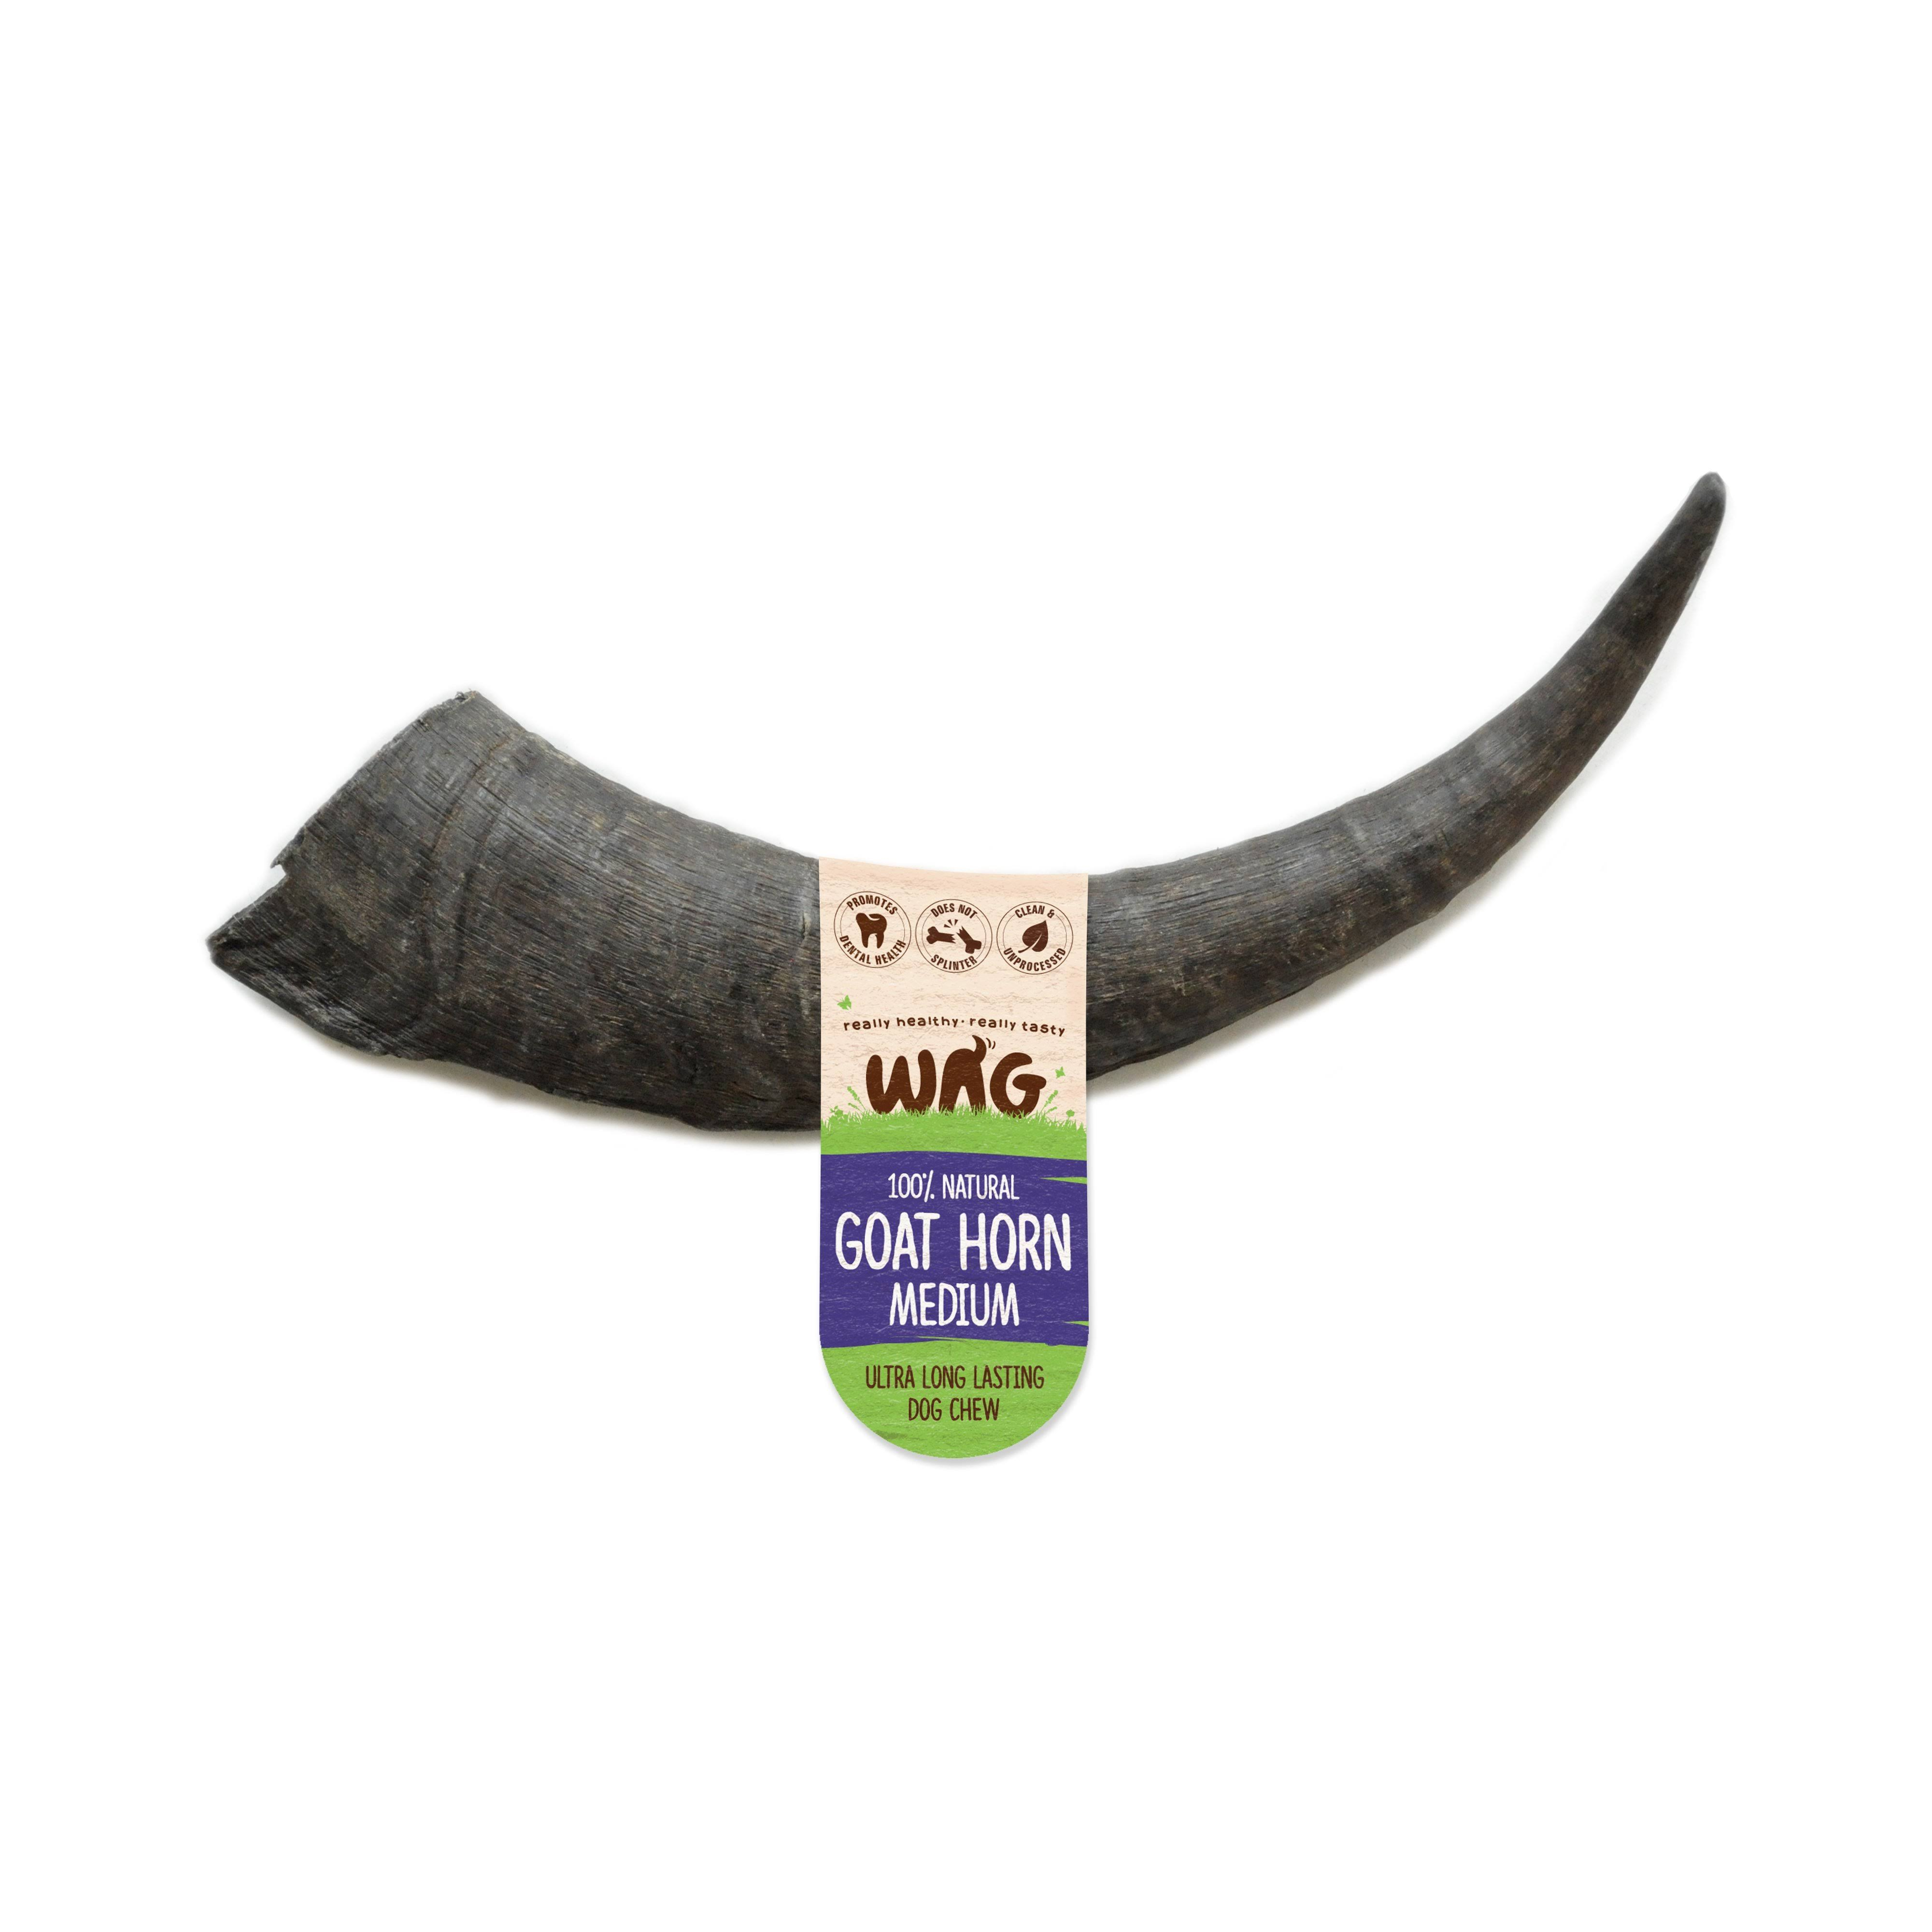 Watch & Grow Dog Treat Goat Horn - Medium